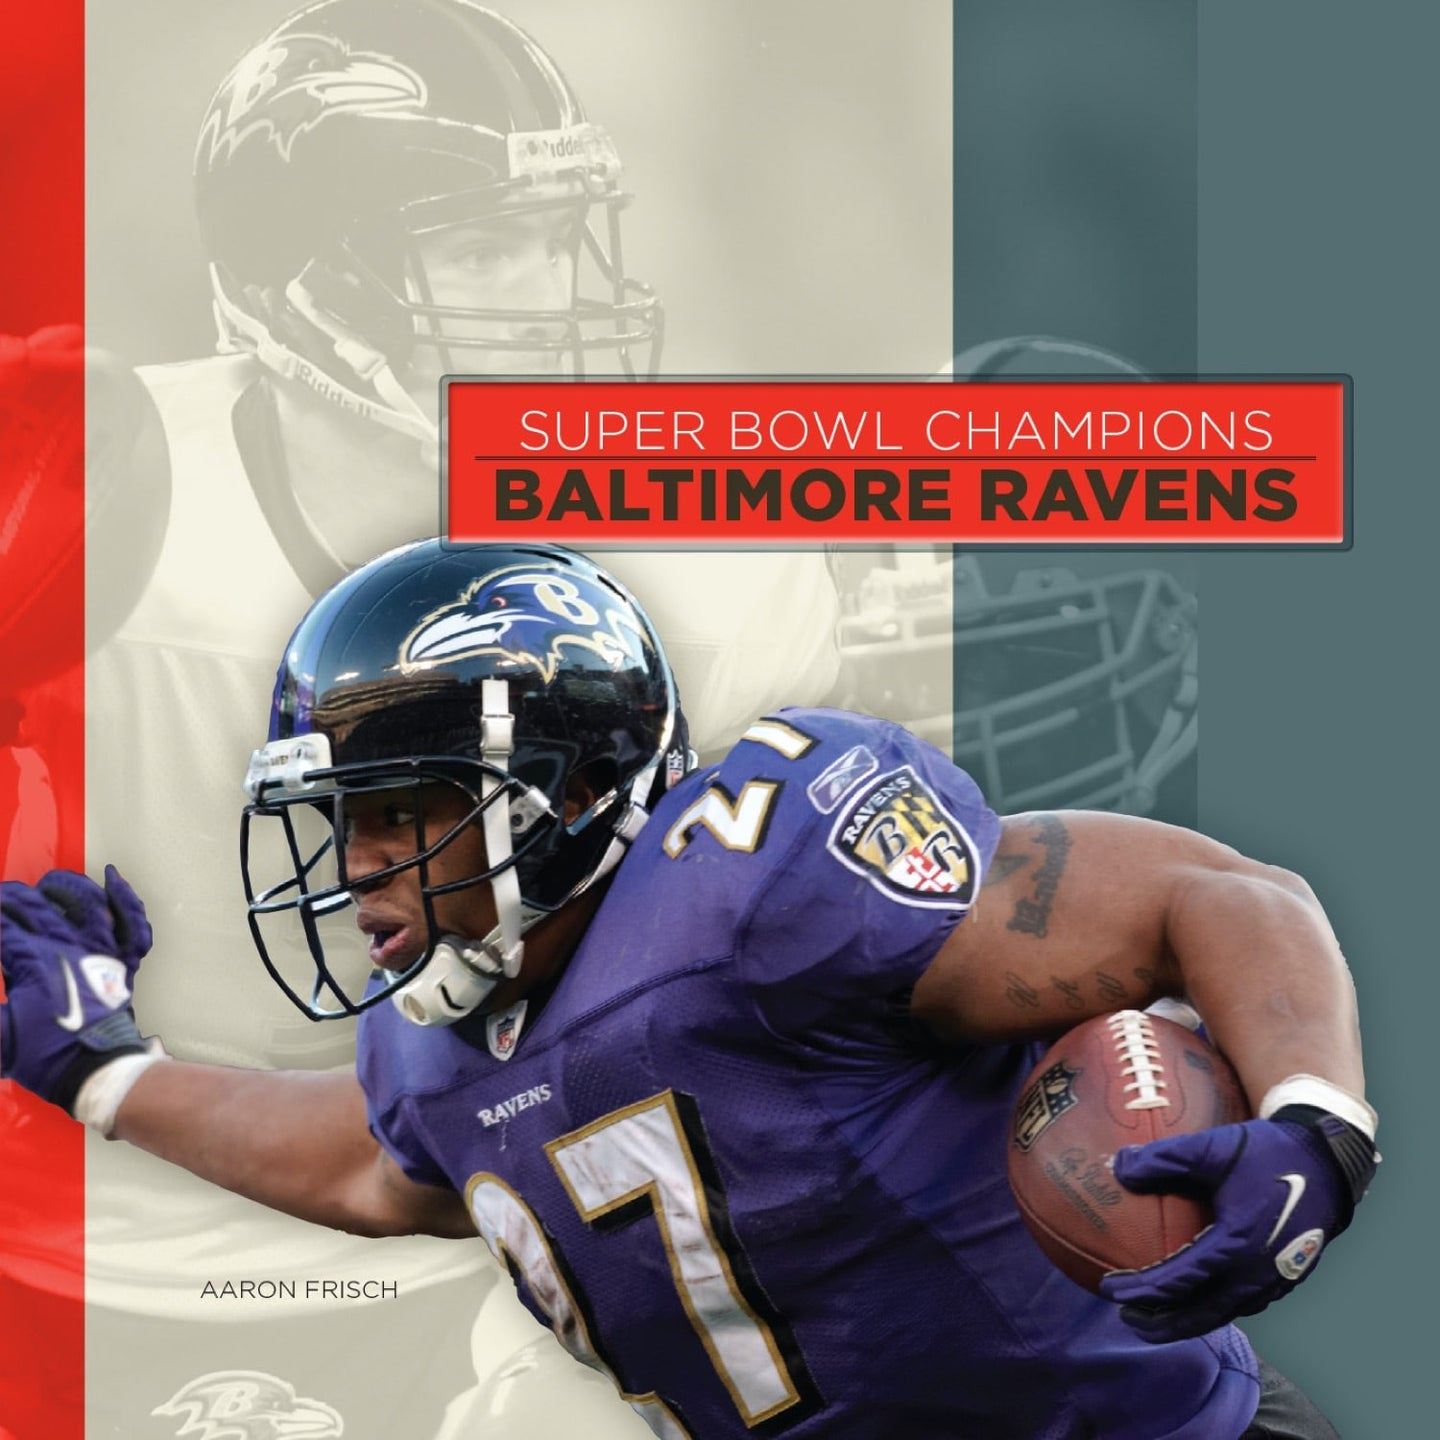 Super Bowl Champions: Baltimore Ravens